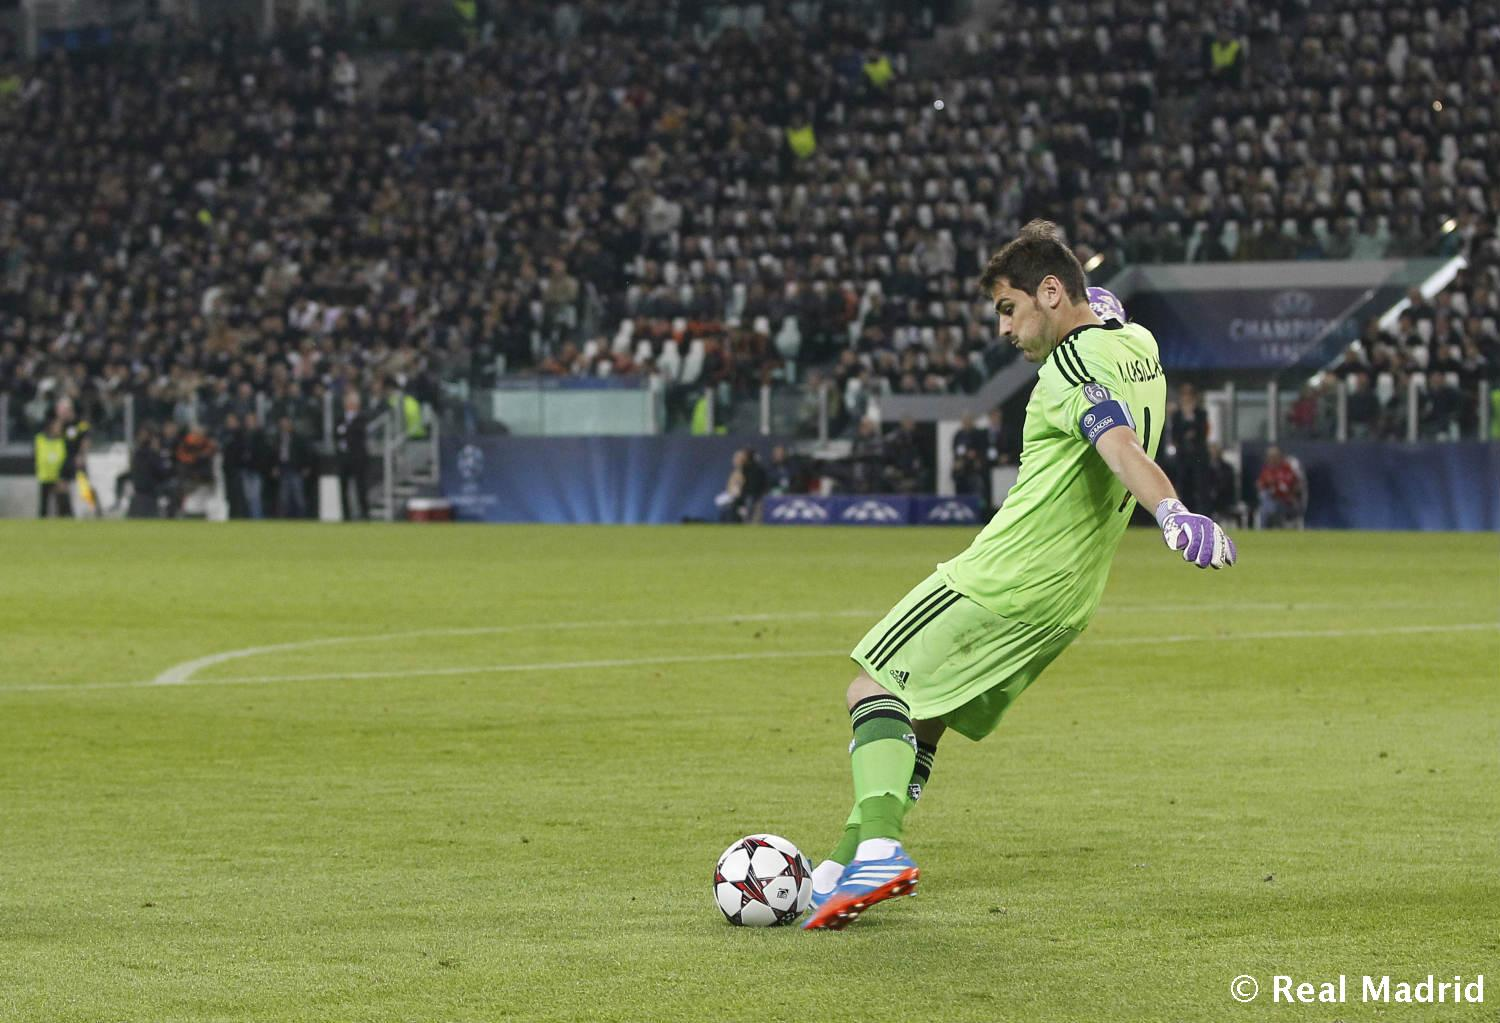 Real Madrid - Iker Casillas - 19-02-2014